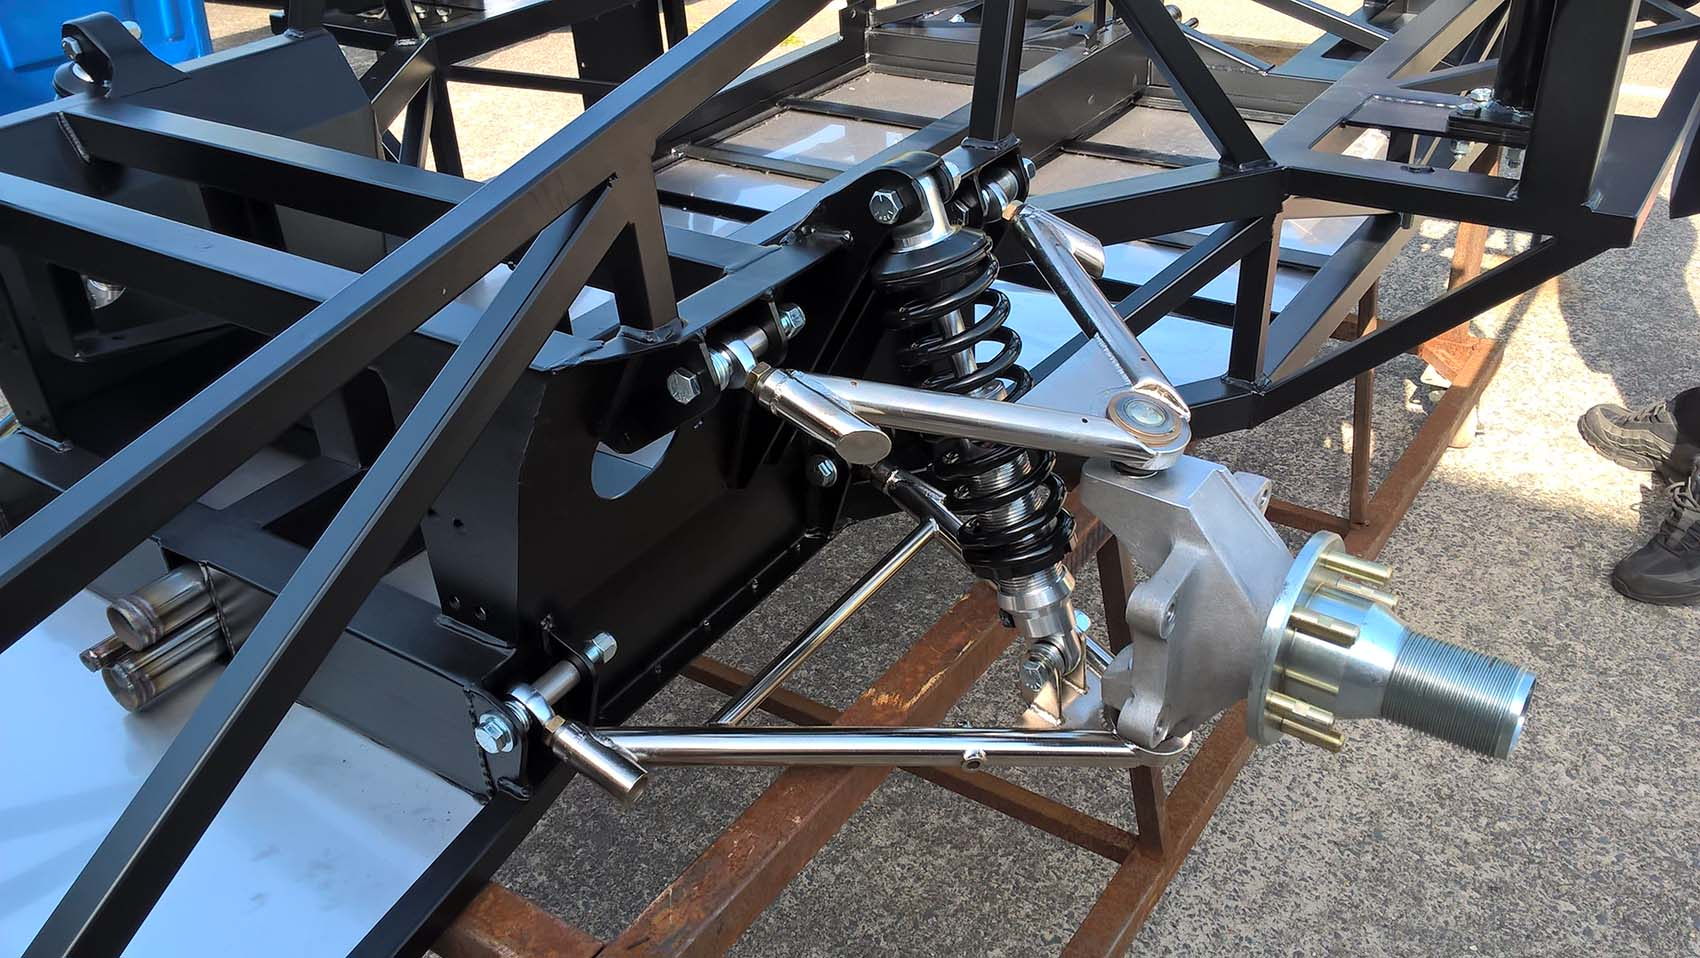 GTR front suspension CDS2 Tube tig welded and nickel plated rod ended adjustable suspension arms.